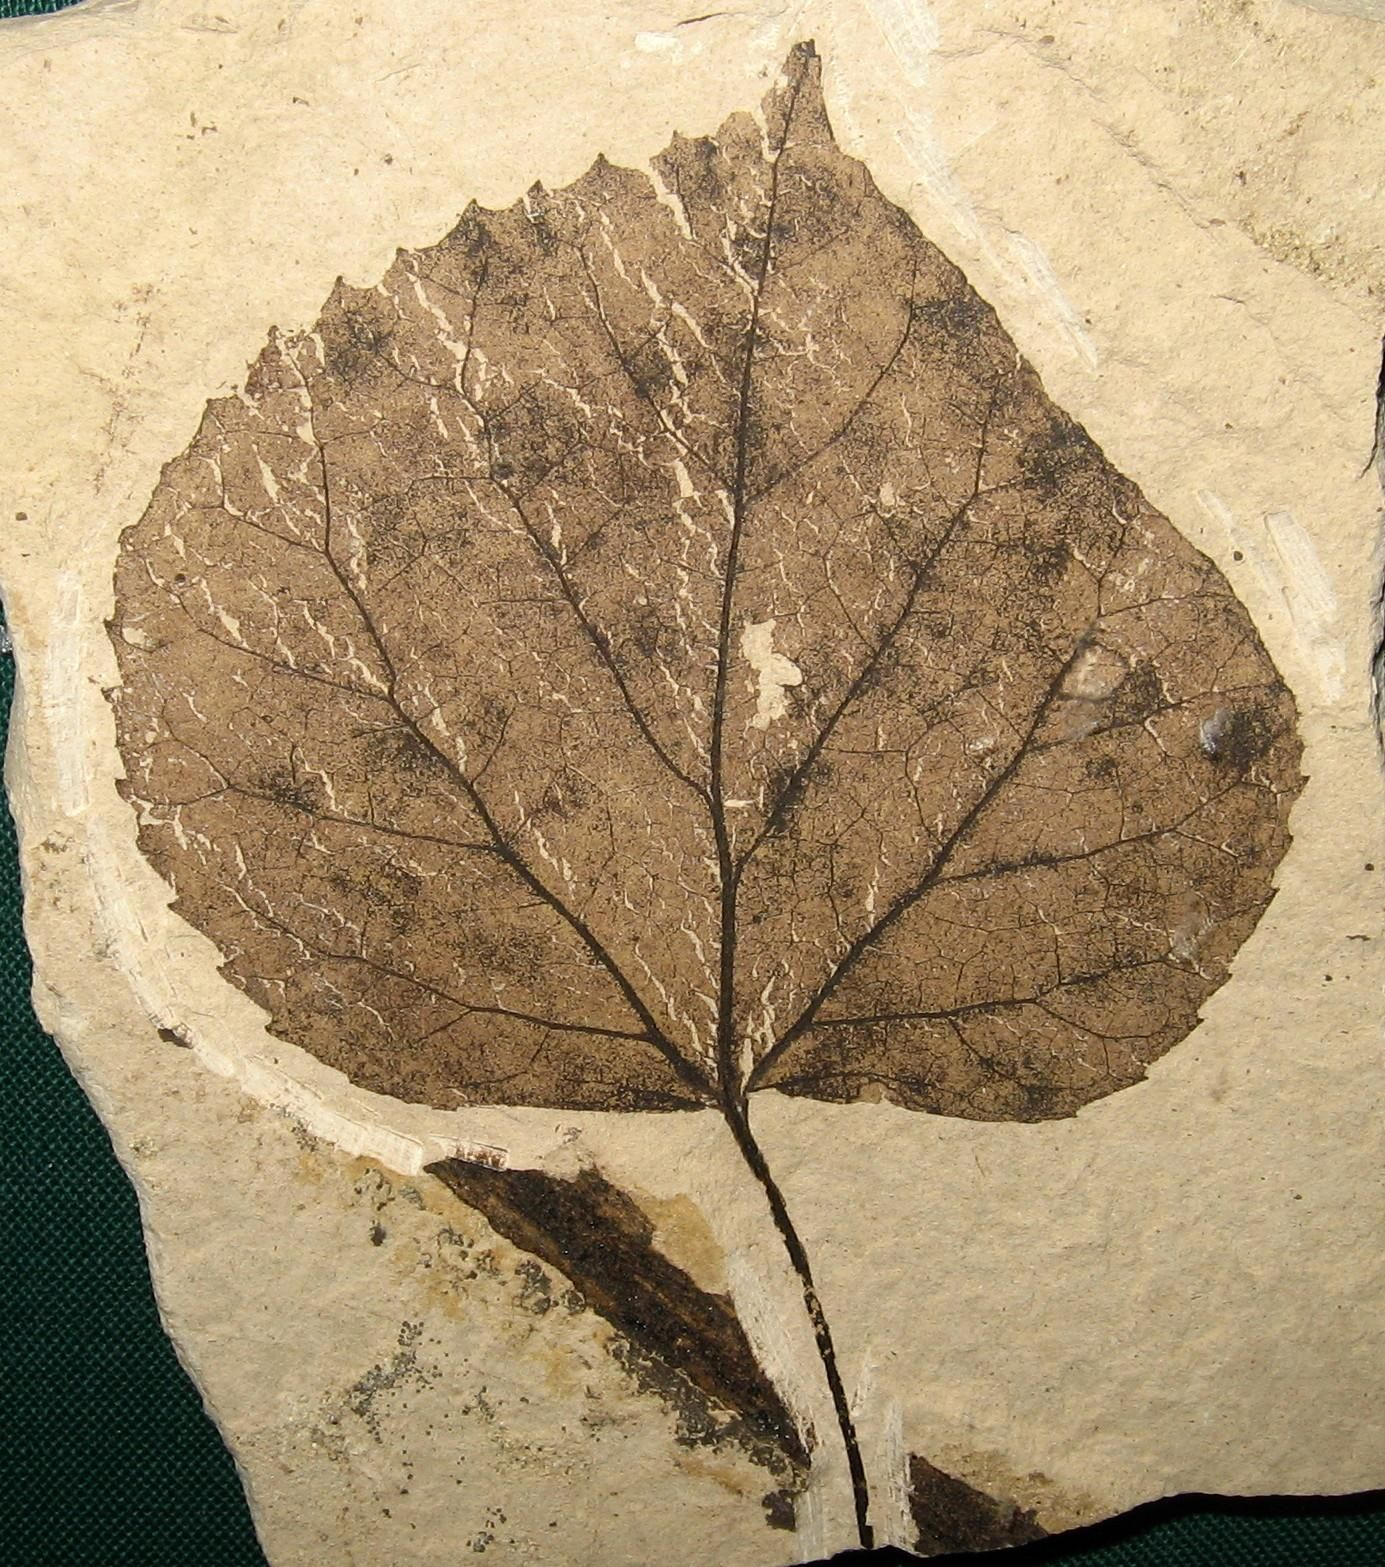 Pin by larry violett on fossils birthday tree trees to